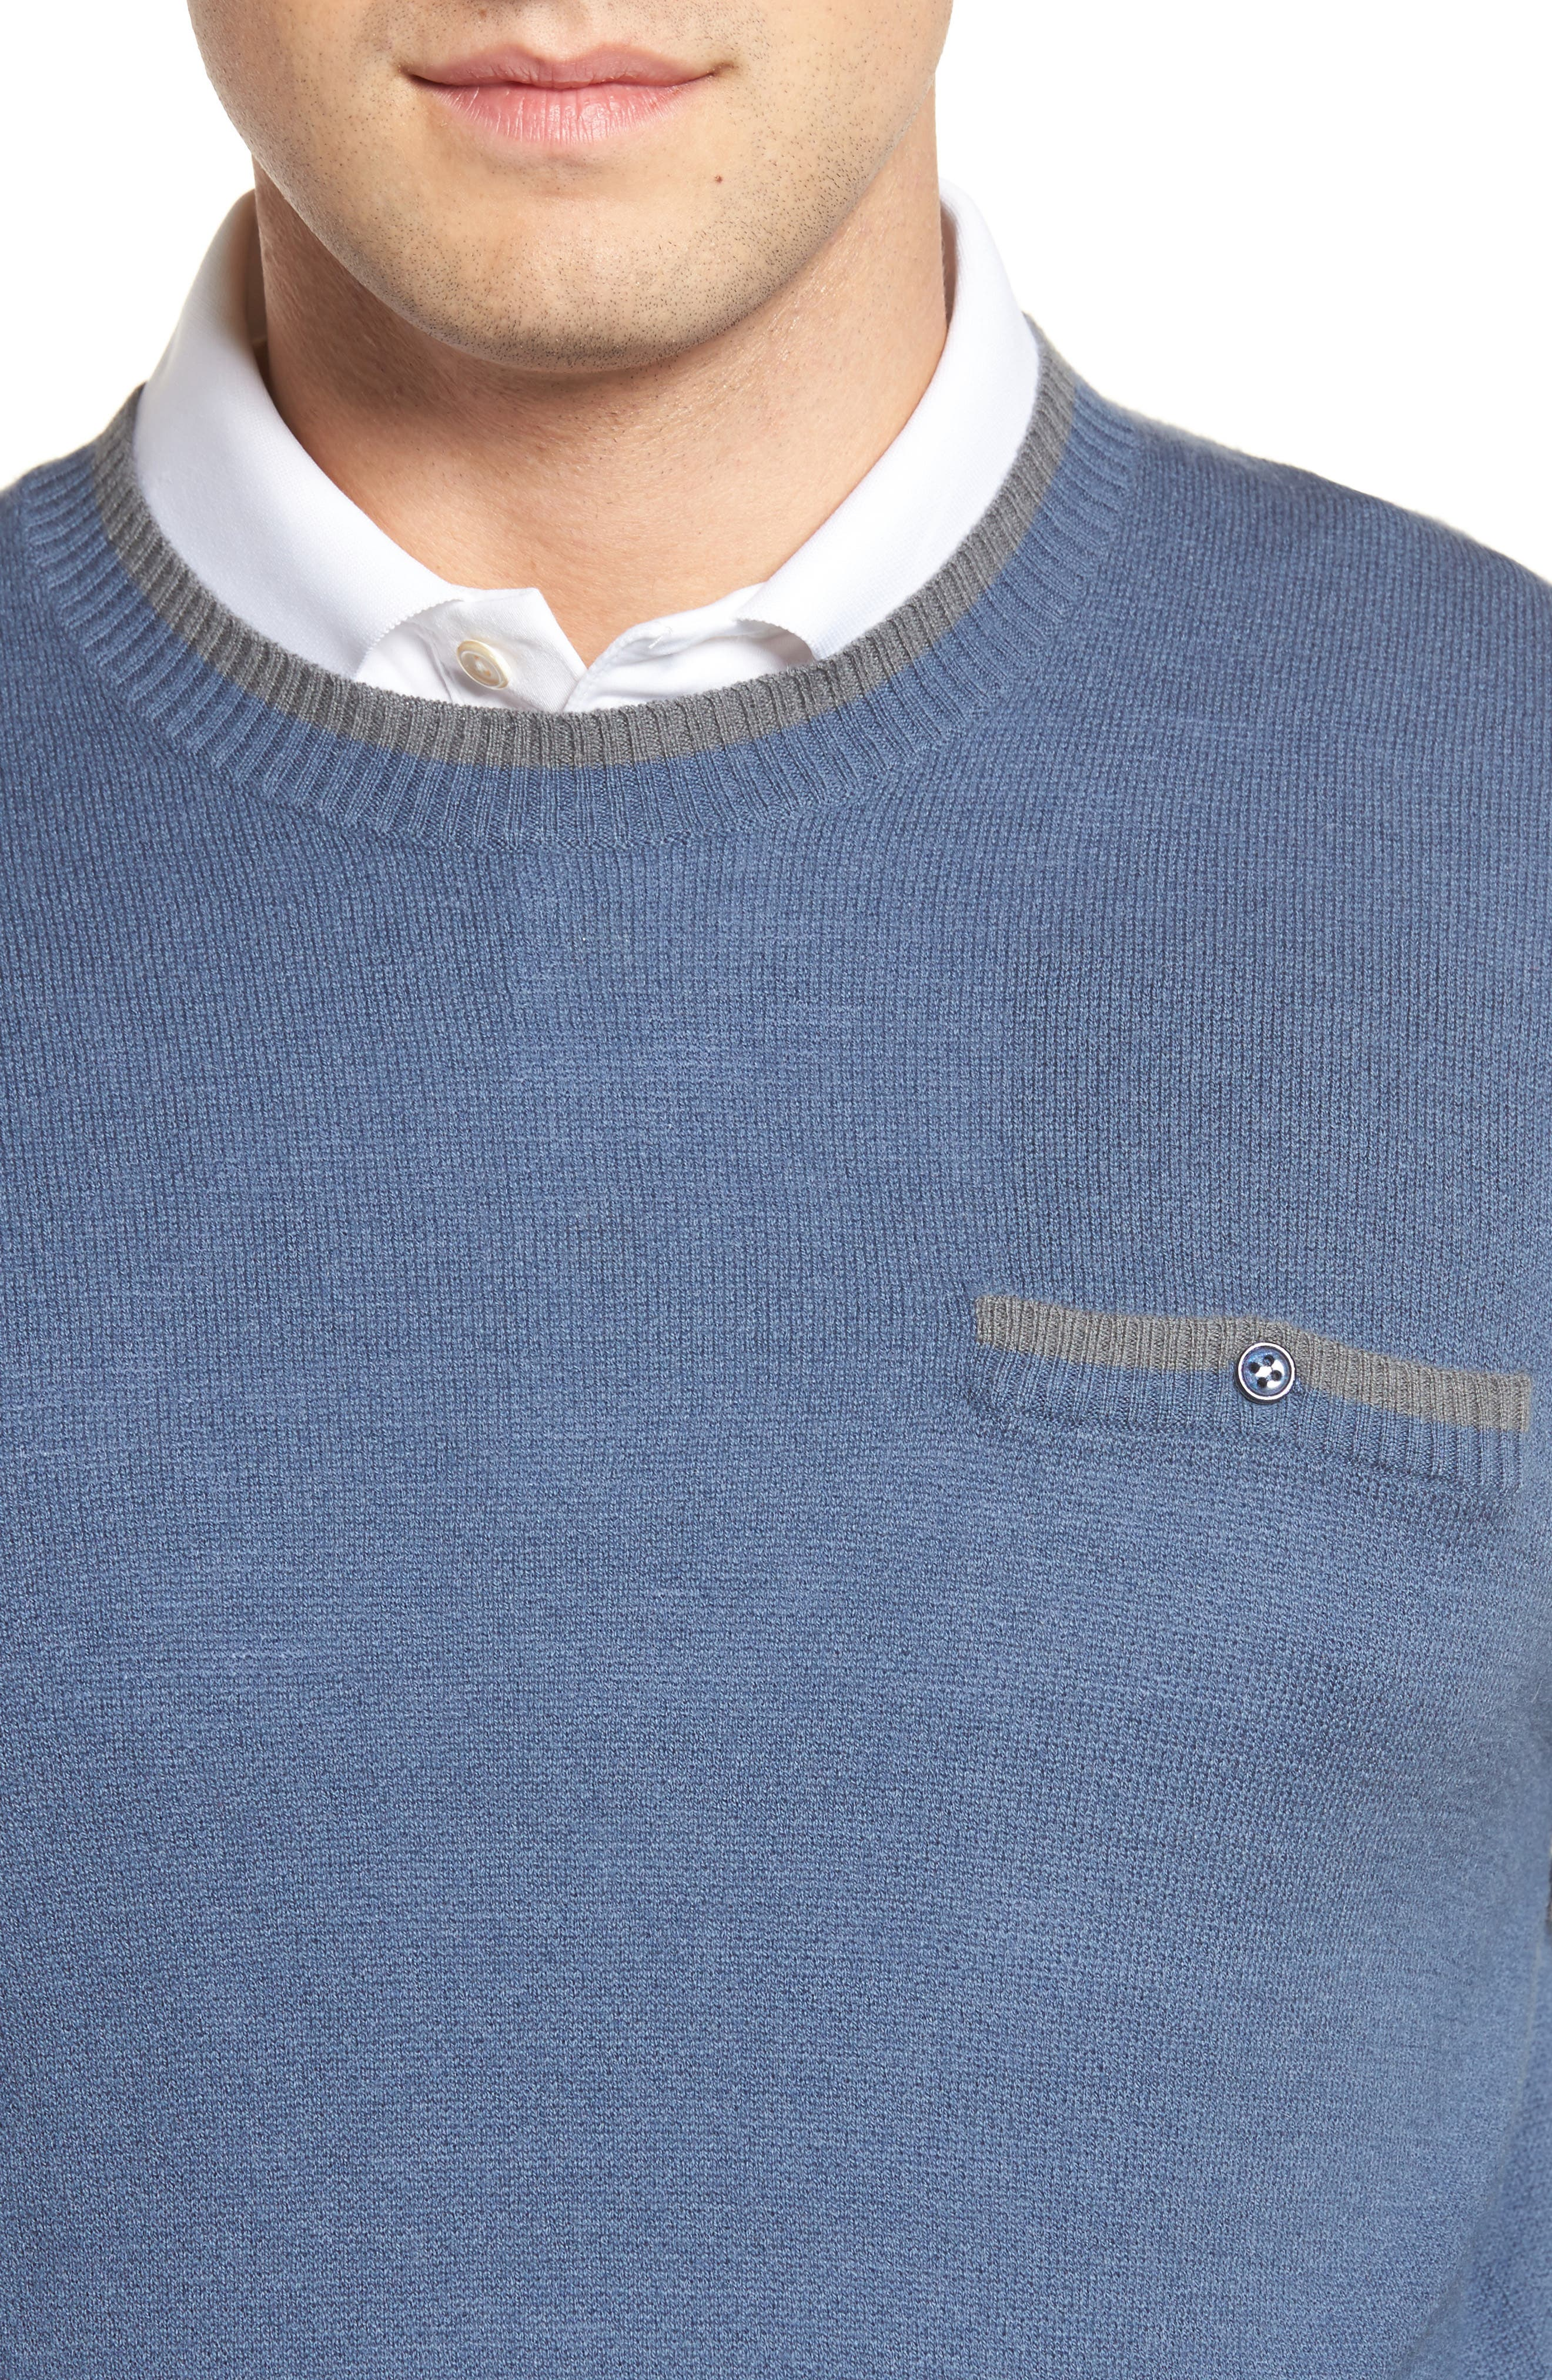 Paglia Wool Blend Sweater,                             Alternate thumbnail 4, color,                             400